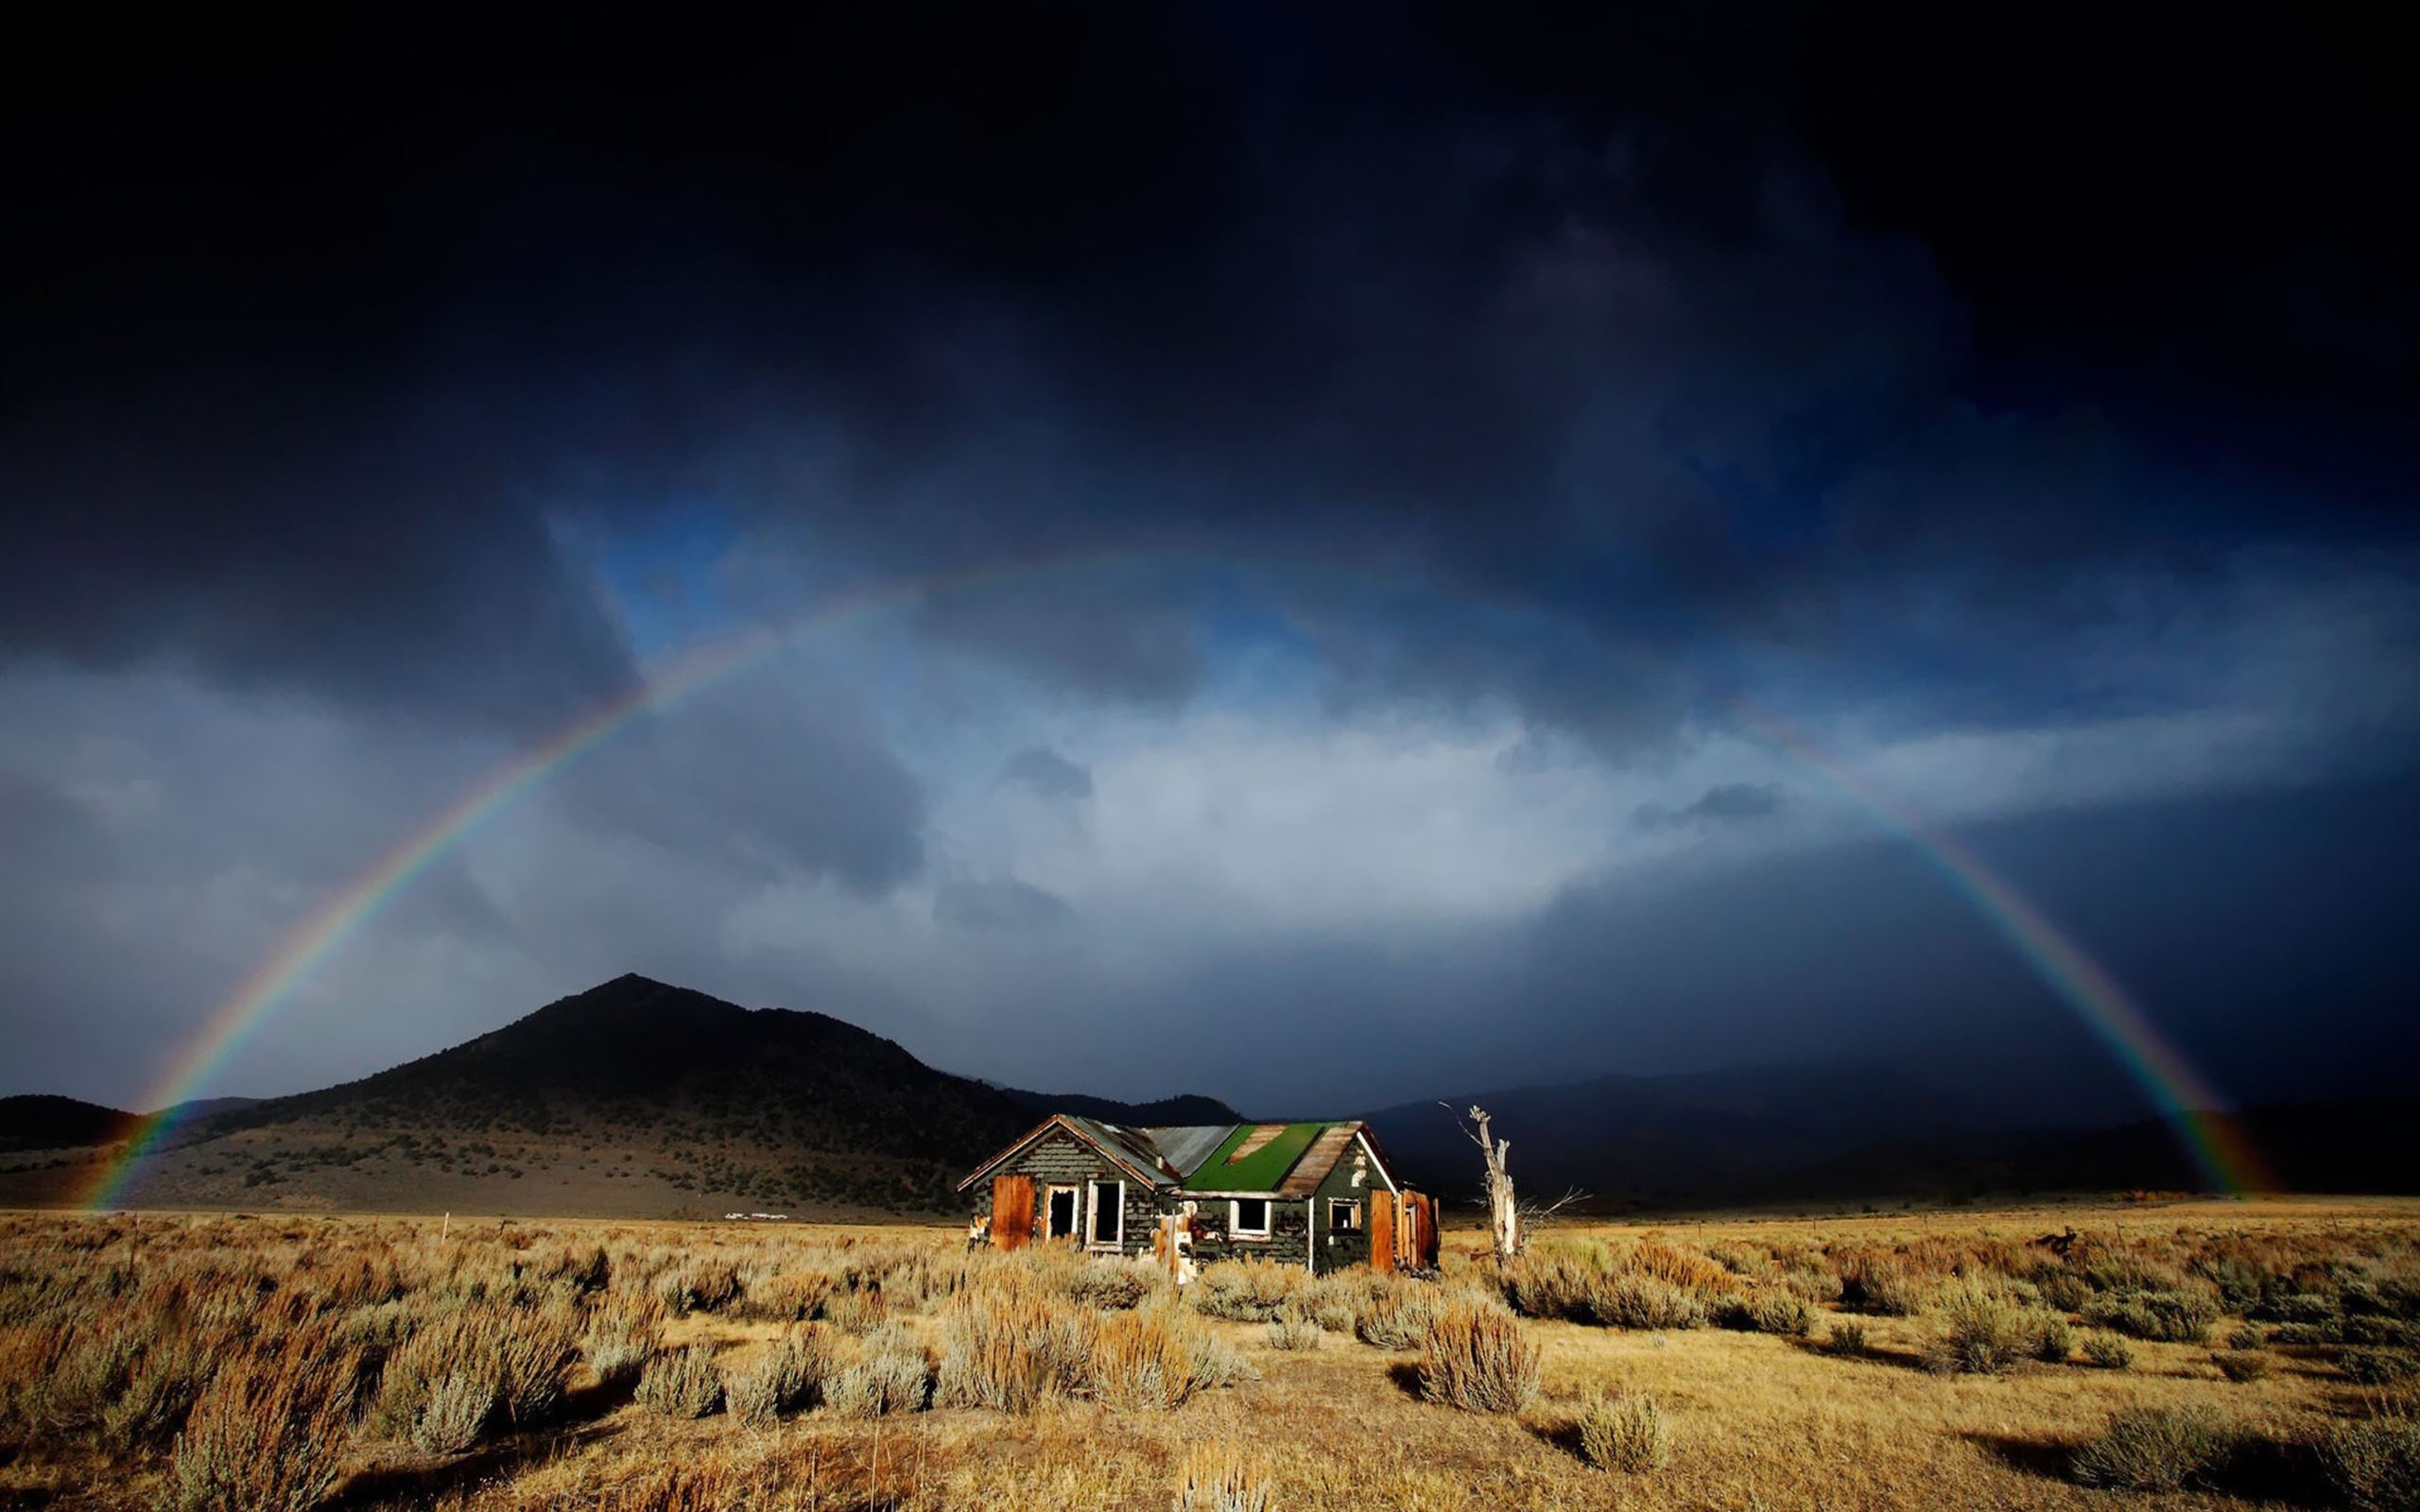 Abandoned House Under Rainbow Macbook Air Wallpaper Download